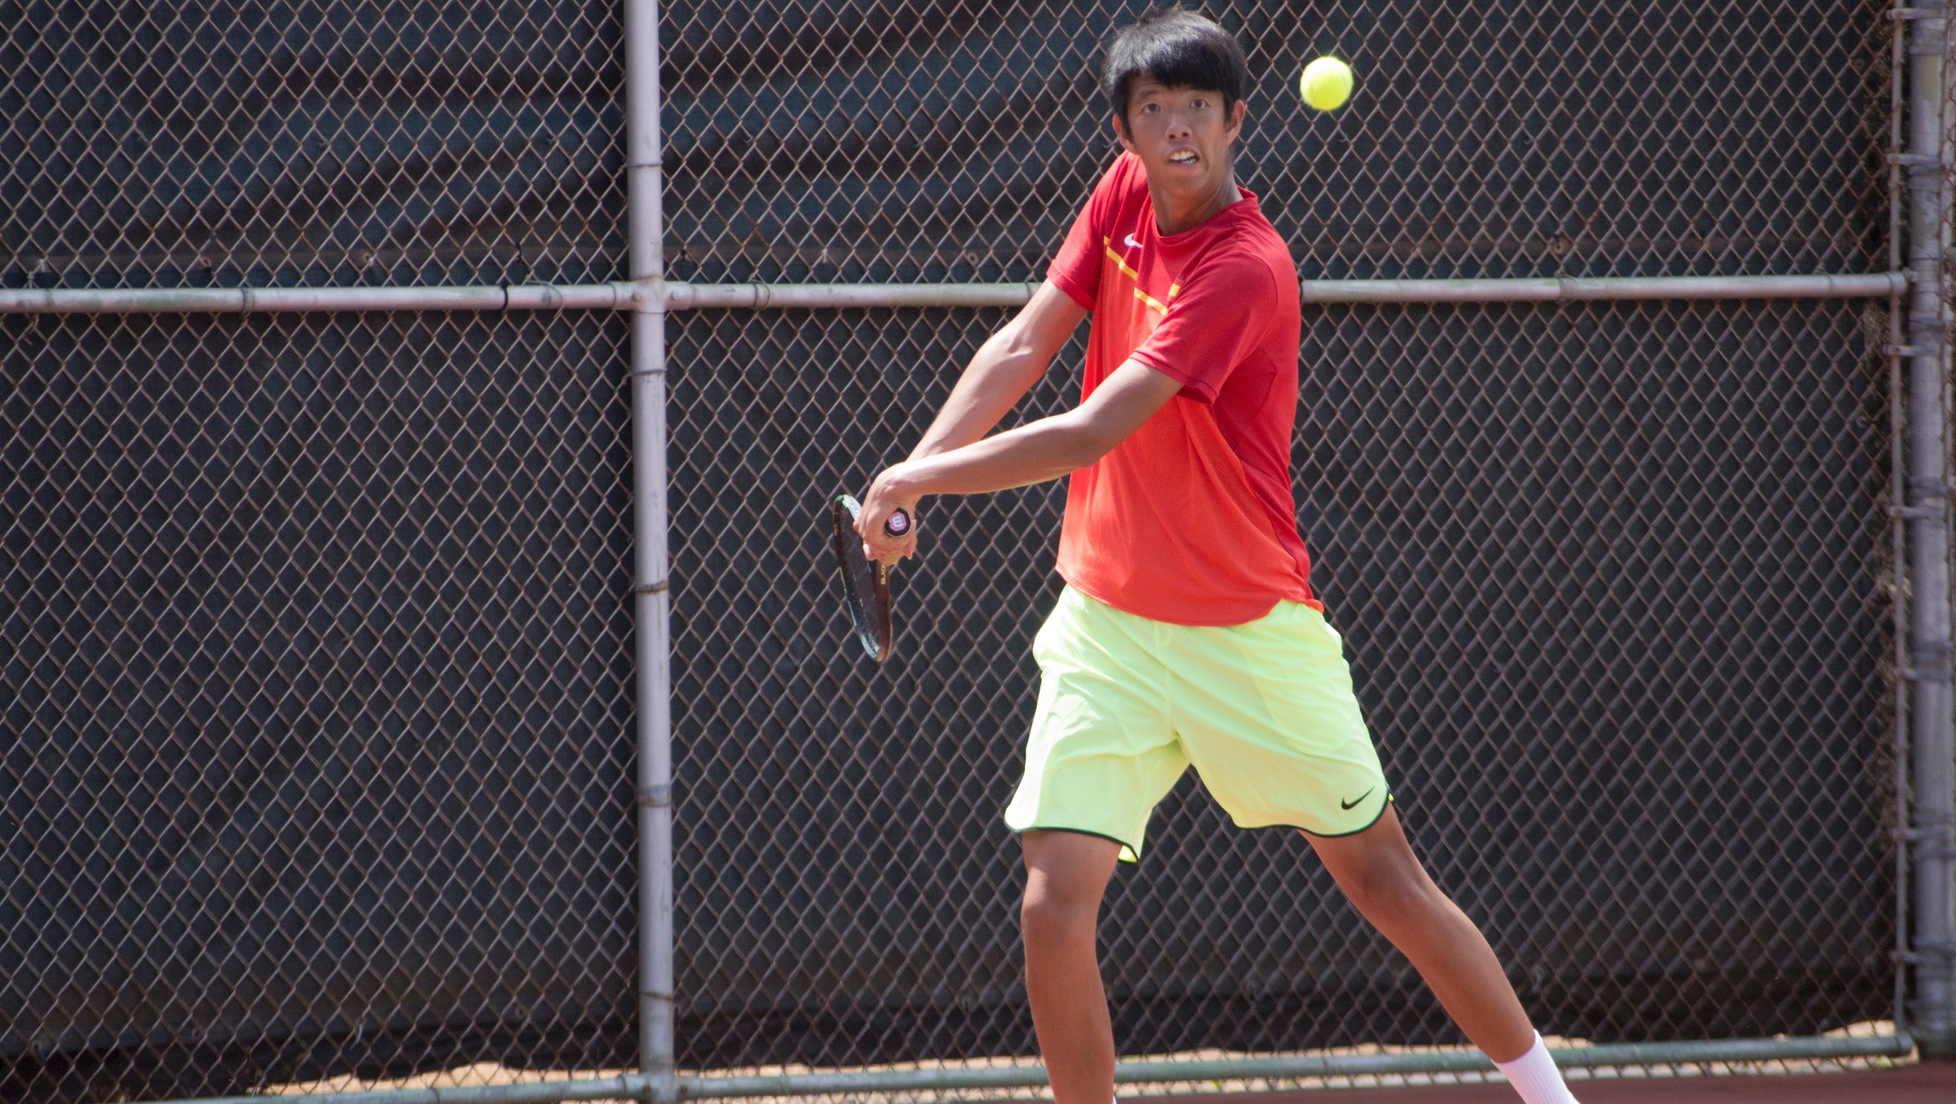 Tsu-Ping Kuang readies to return a serve against Dillon Lam of Hawaii Hilo.